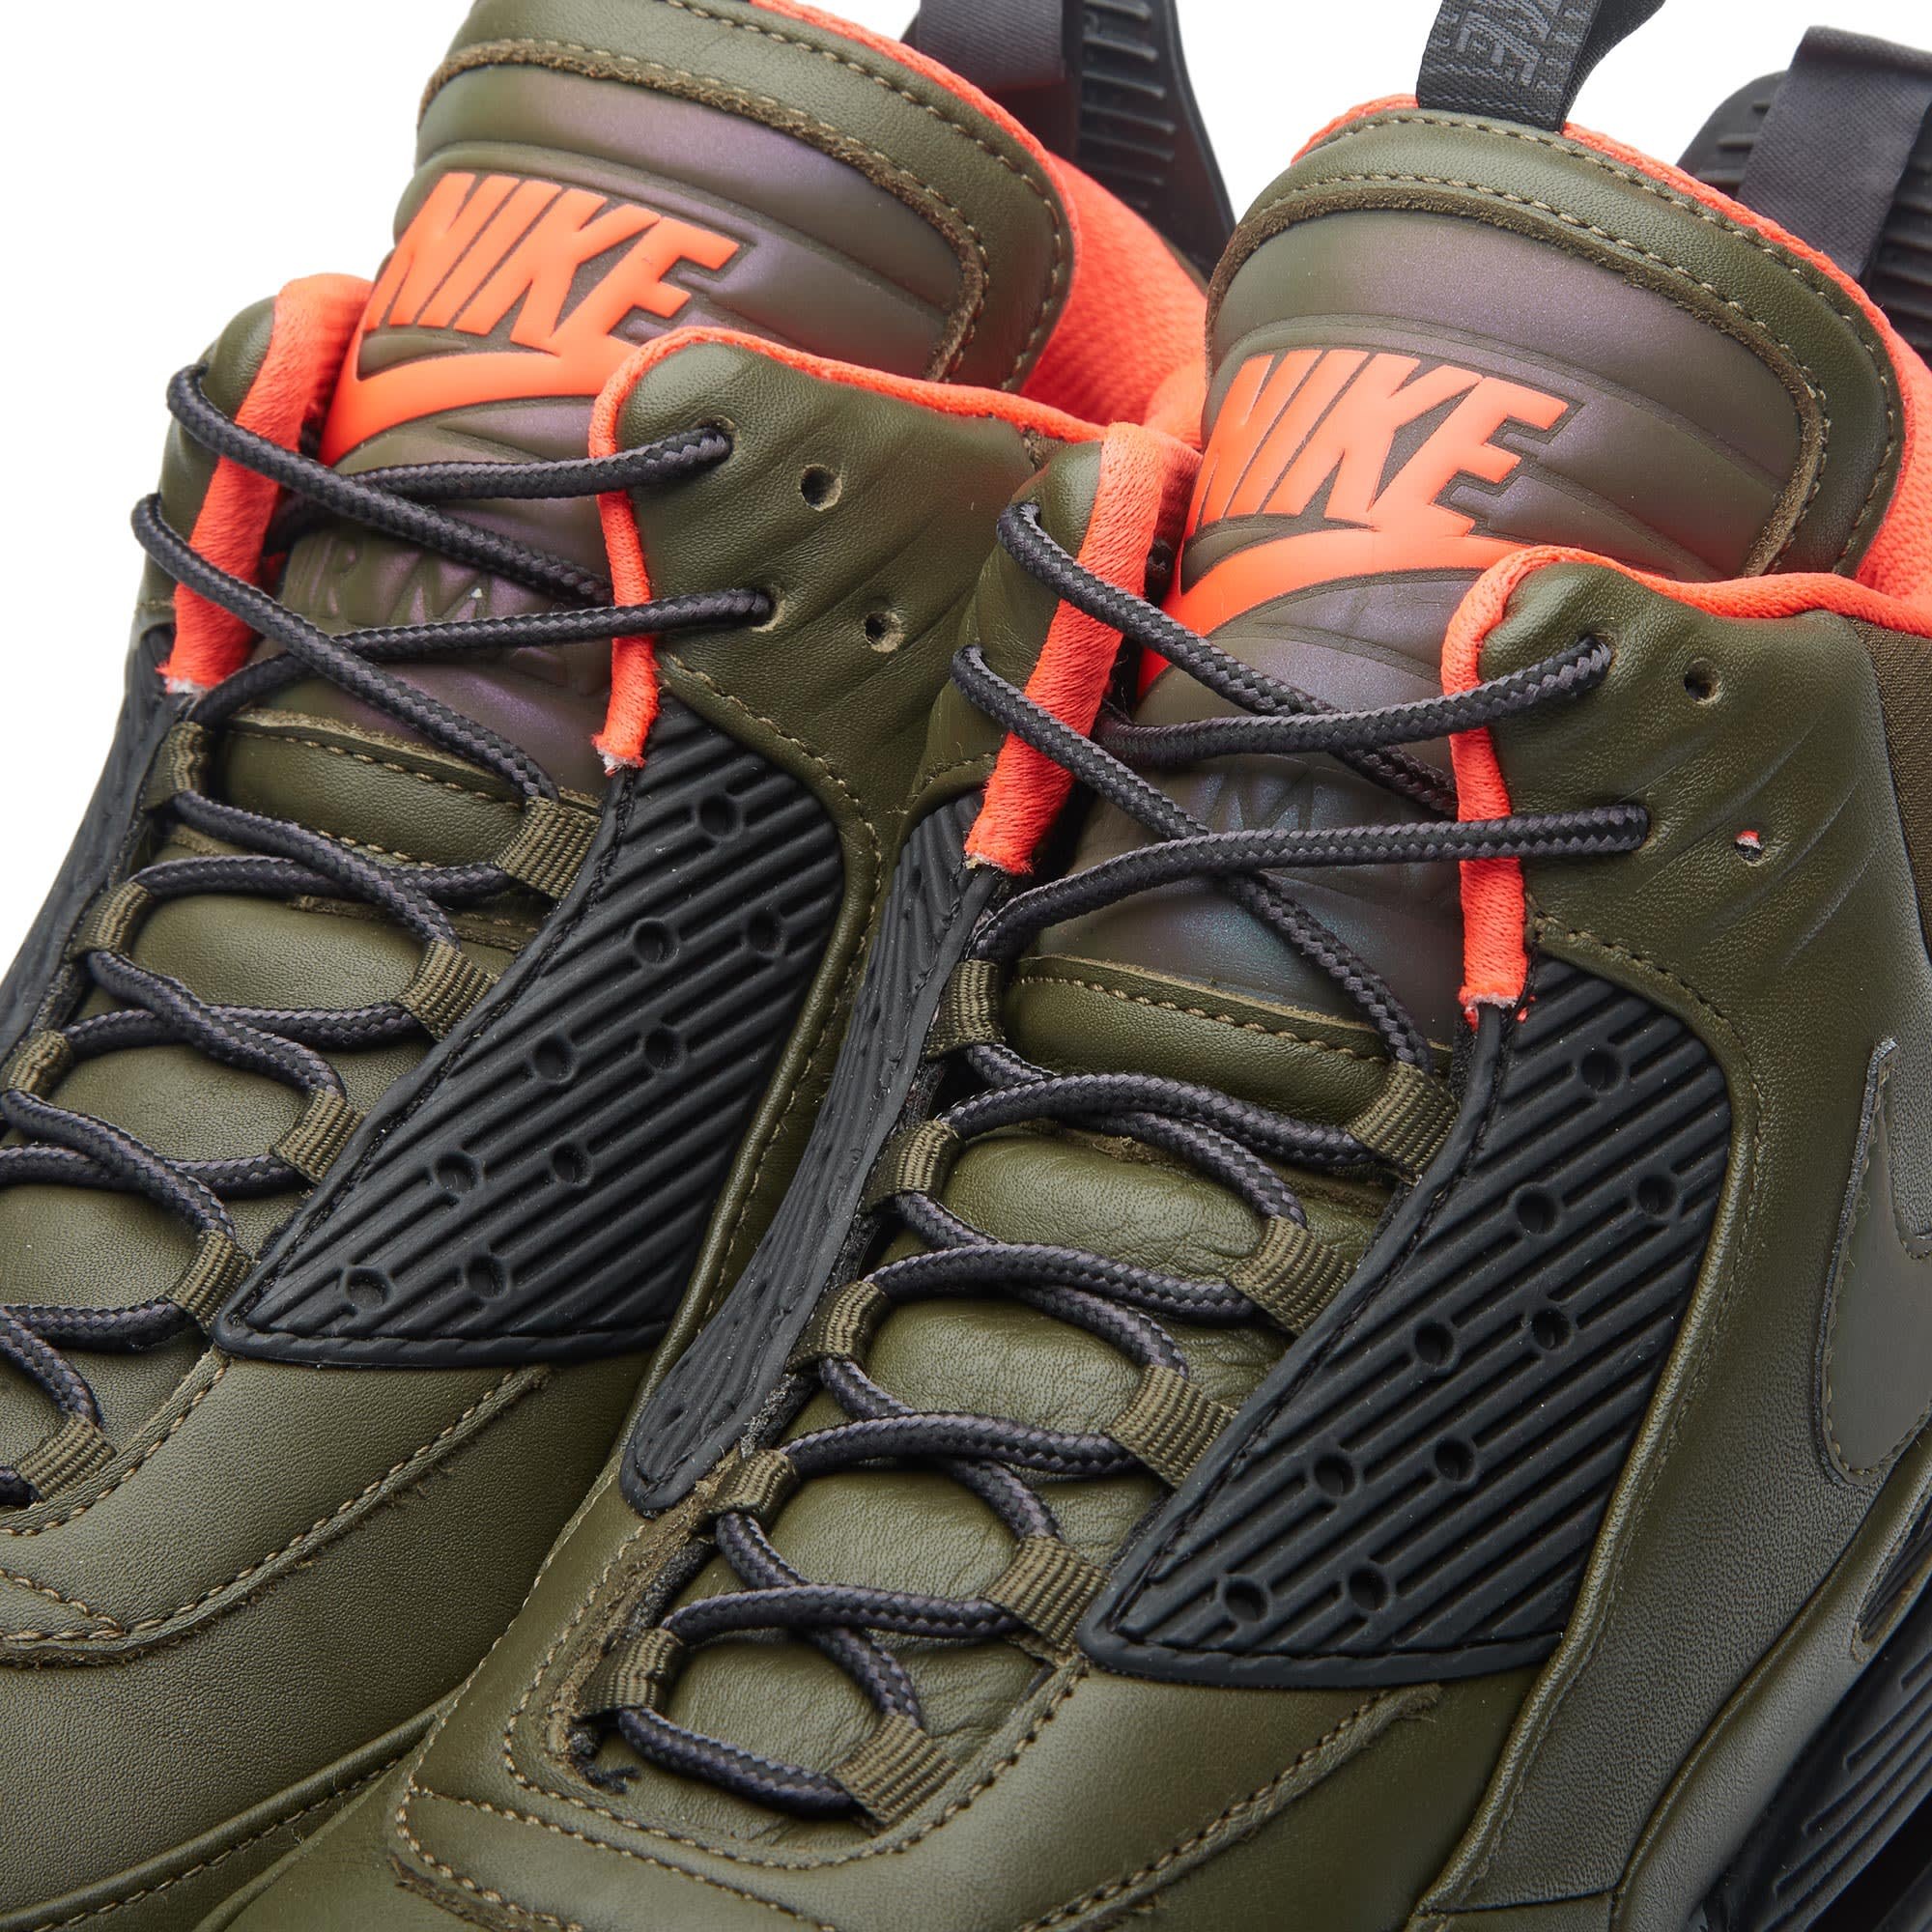 newest collection 866e2 75836 Nike Air Max 90 Sneakerboot Winter Dark Loden   Black   END. nike air max